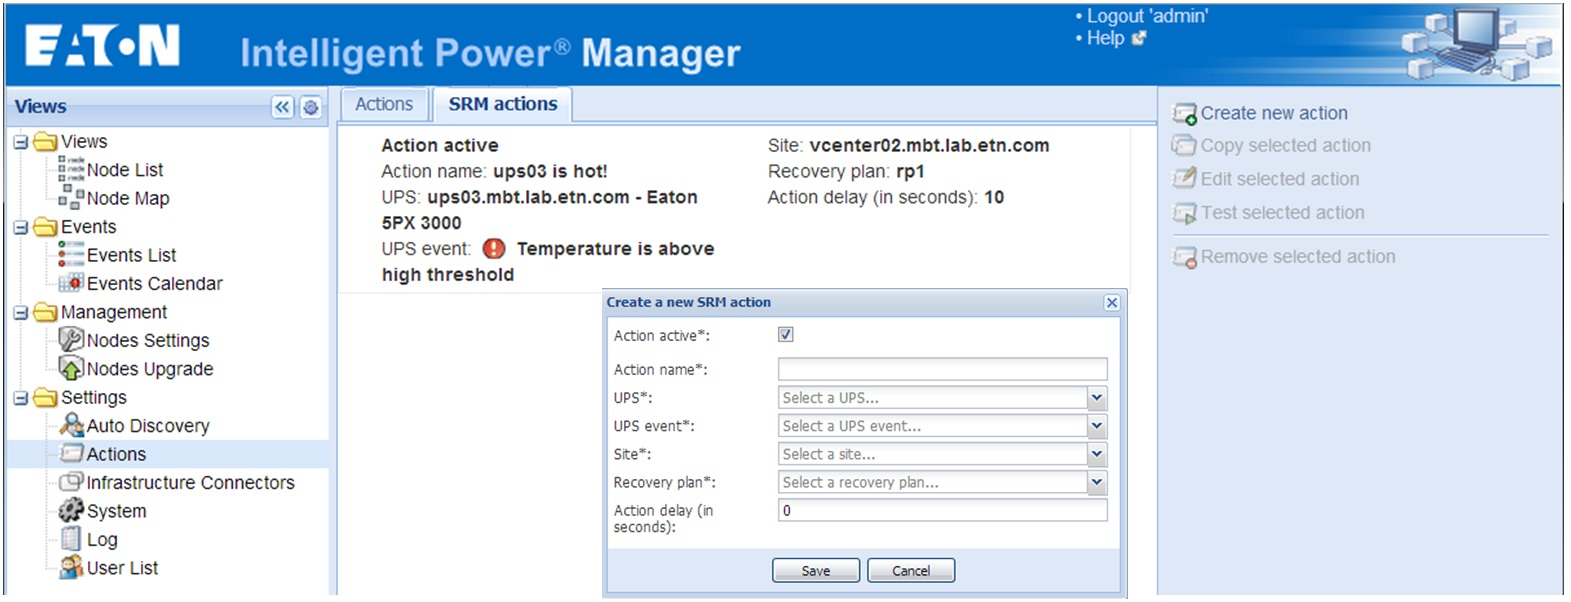 Eaton's latest intelligent power manager software